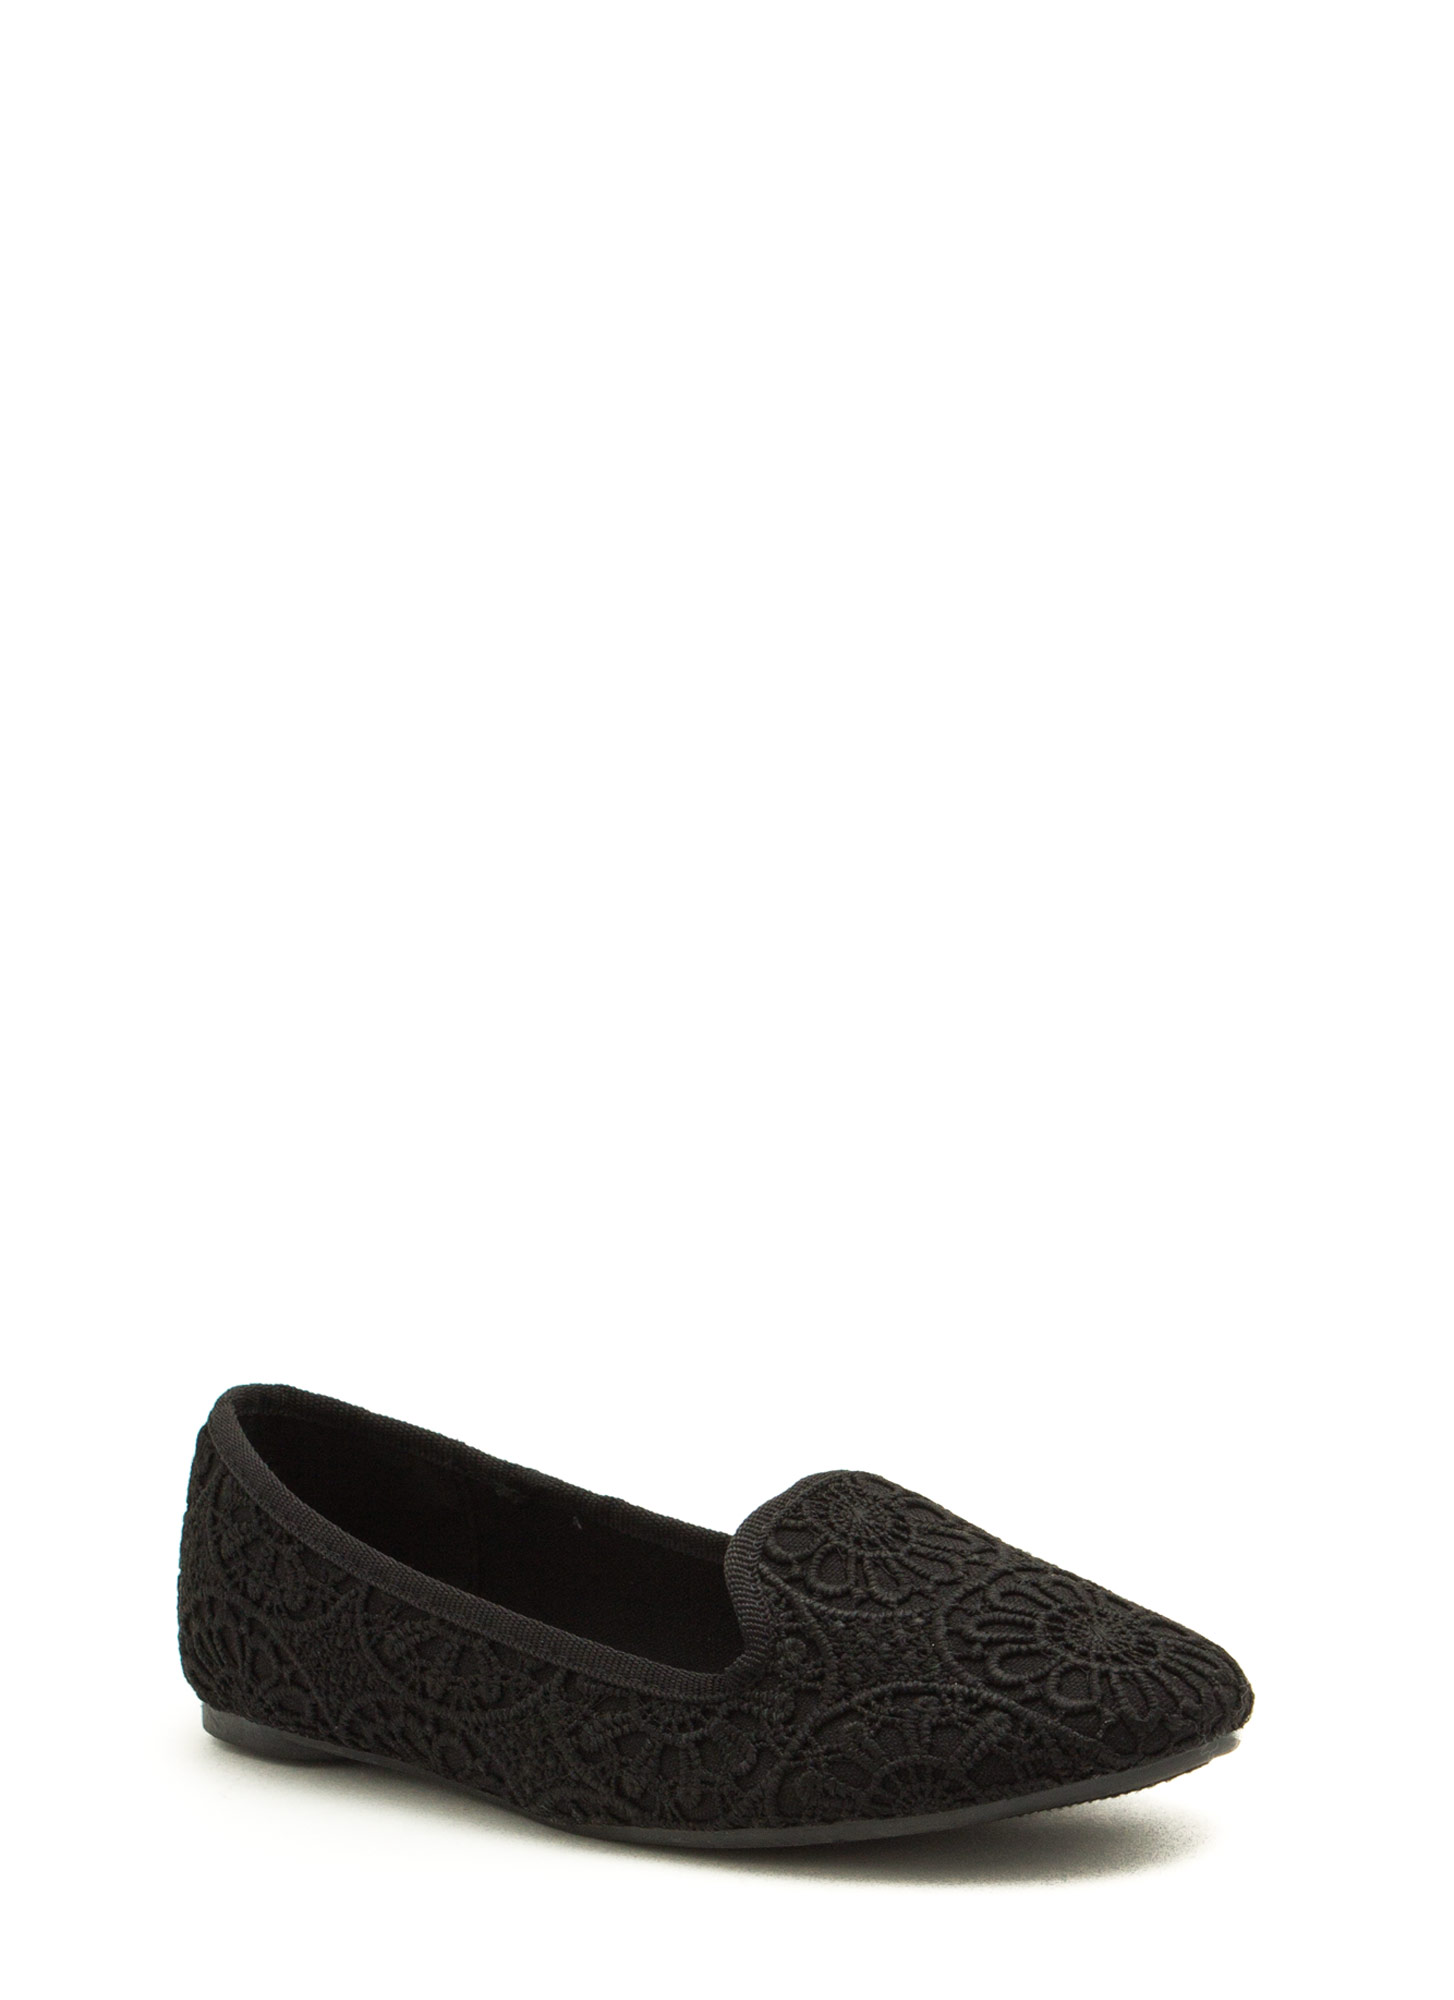 Crochet Creation Floral Smoking Flats BLACK